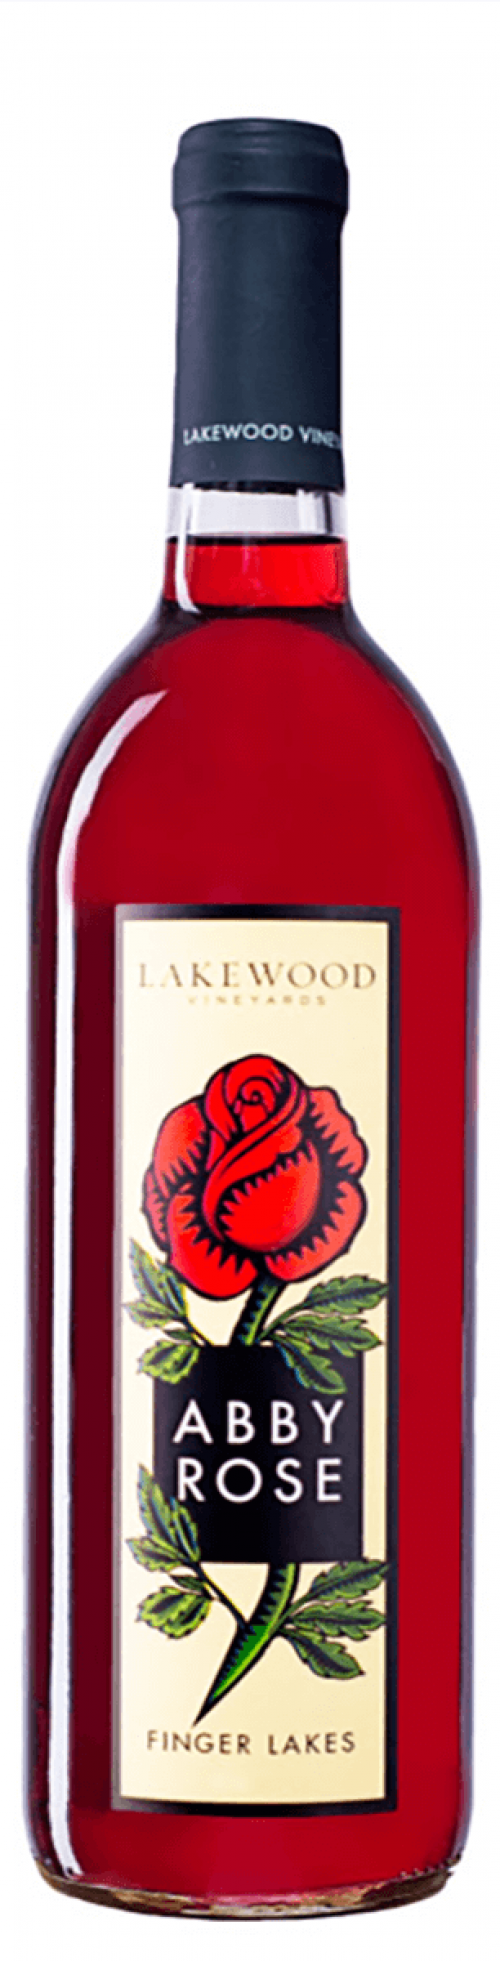 Lakewood Abby Rose 750ml NV